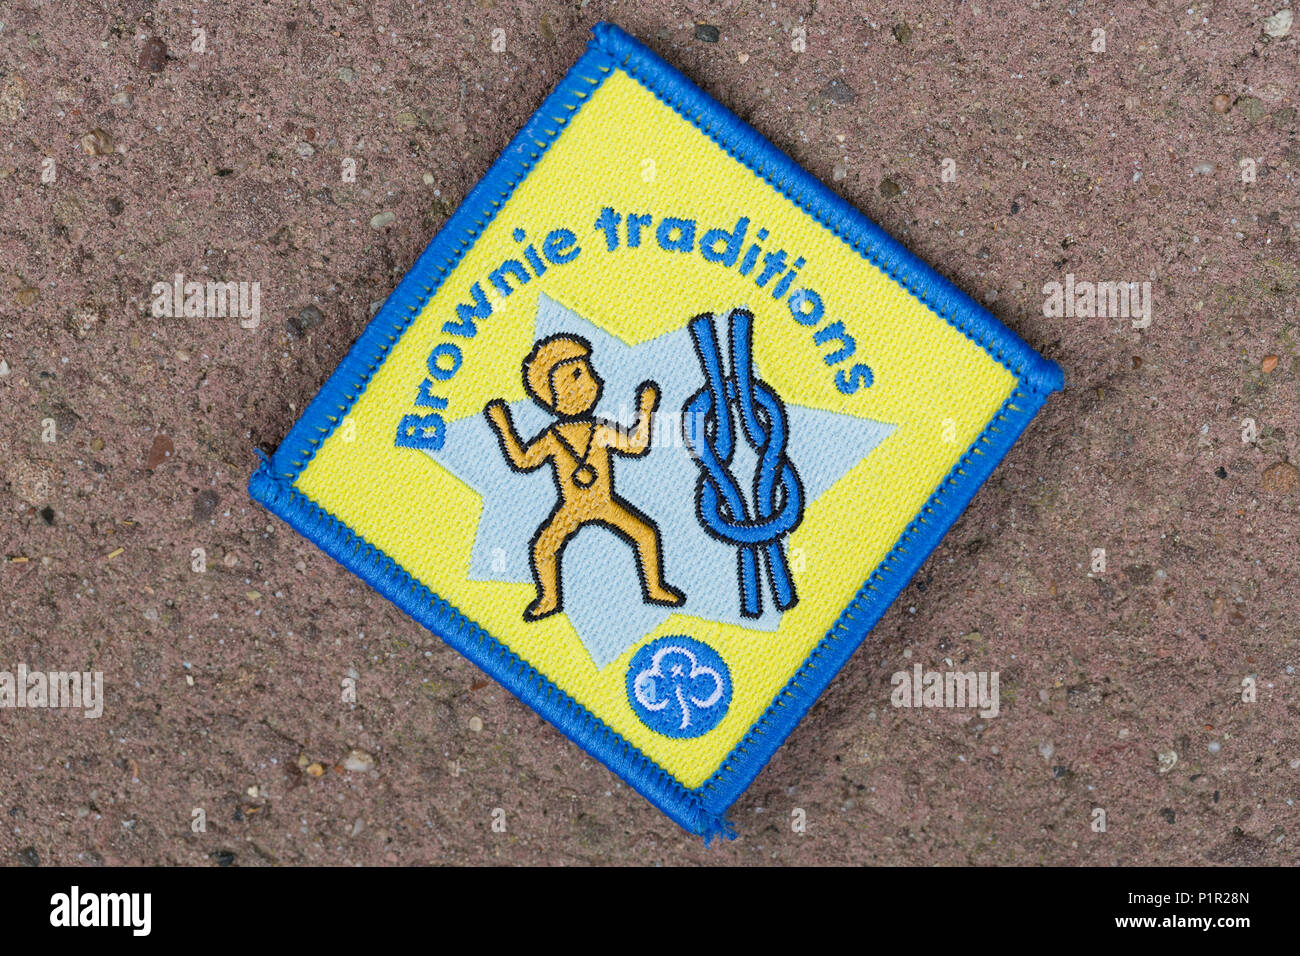 Brownie Traditions Girl Guide / Brownies badge - Stock Image